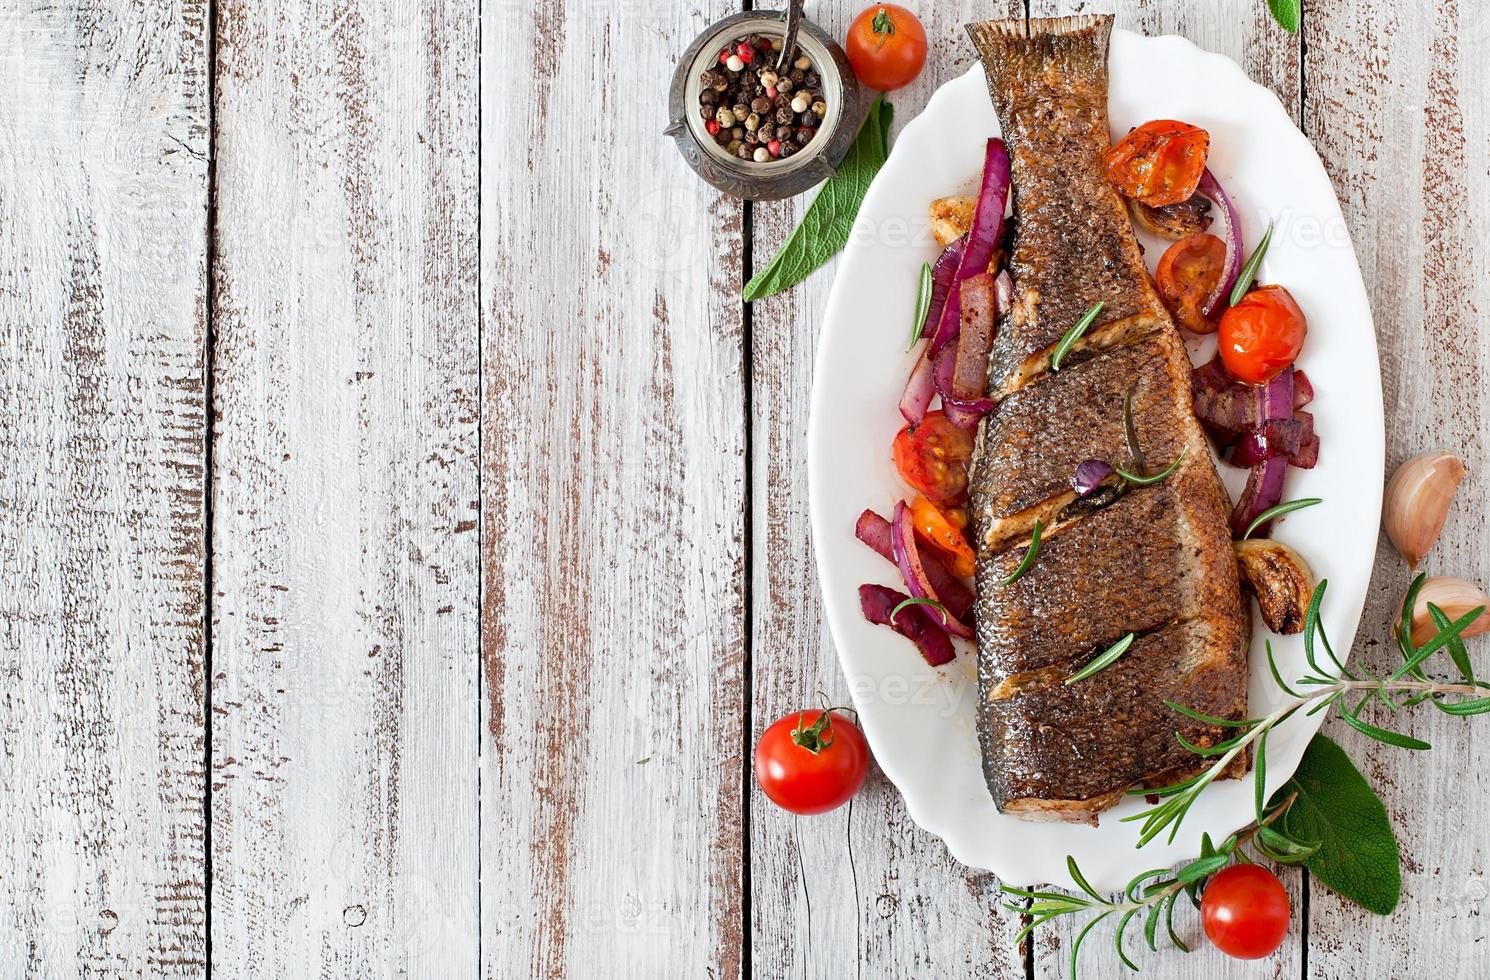 Roasted seabass with vegetables on an old wooden background photo